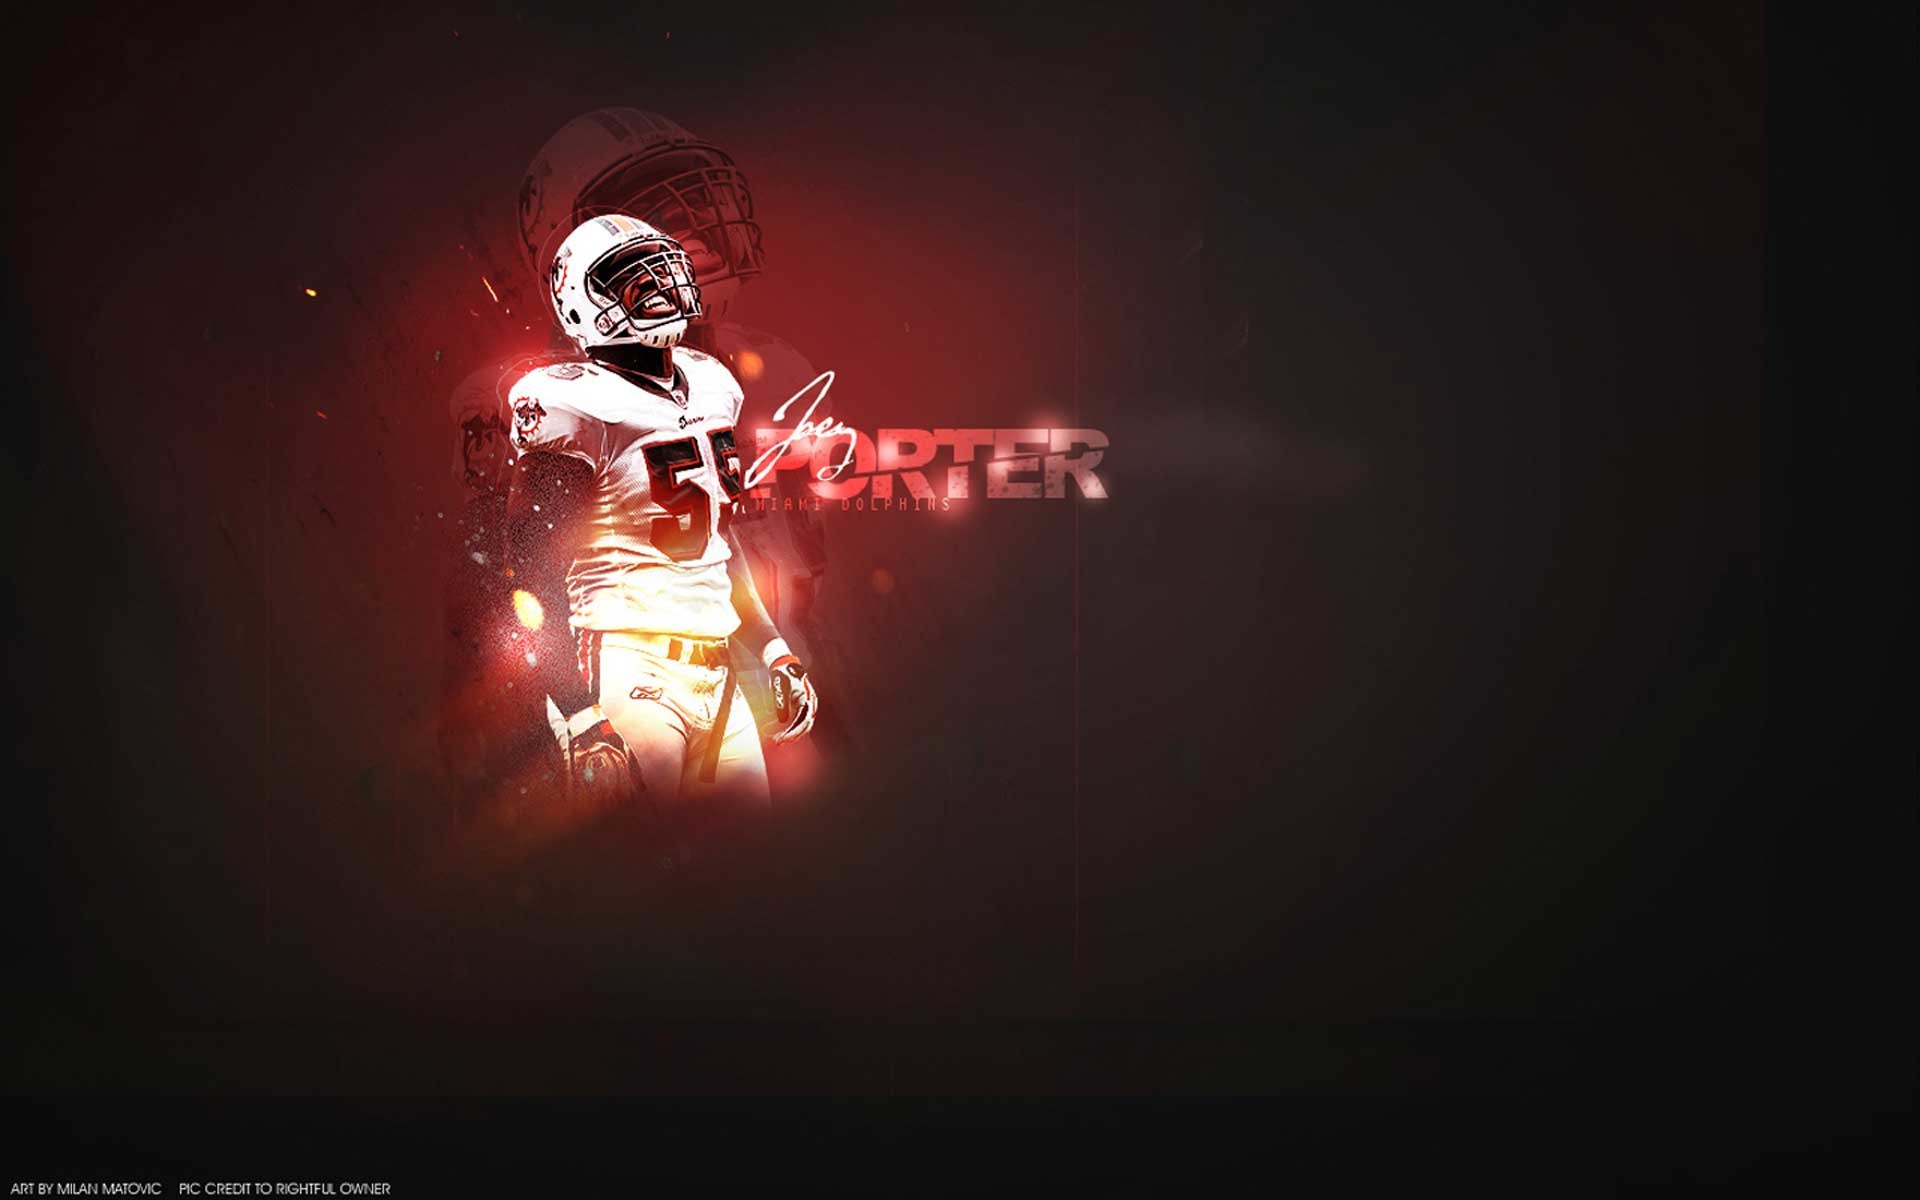 1920x1200 Cool NFL Football Wallpapers - Wallpaper Cave 23 best NIKE Event  Sponsorship images on Pinterest | Nike .